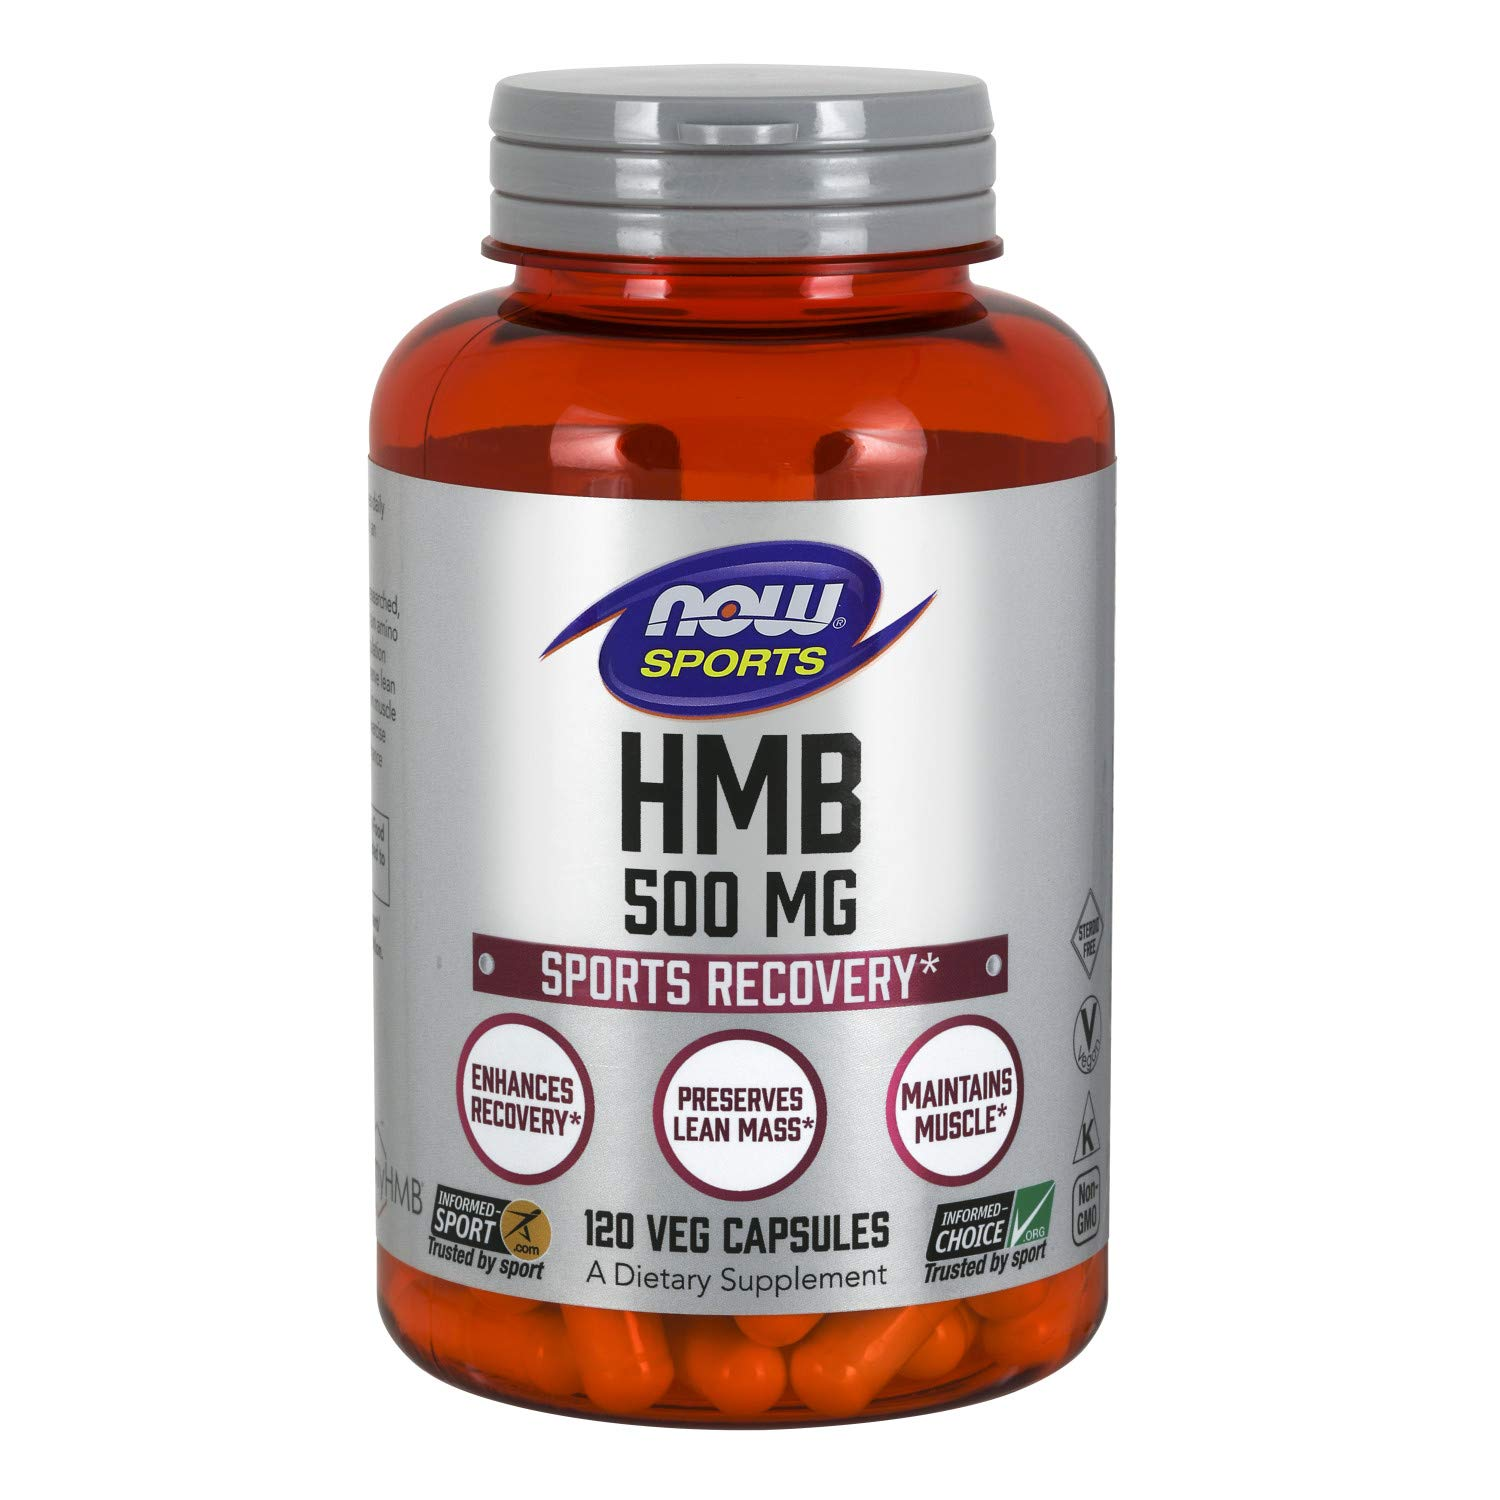 NOW HMB, 500 mg, 120 Veg Capsules